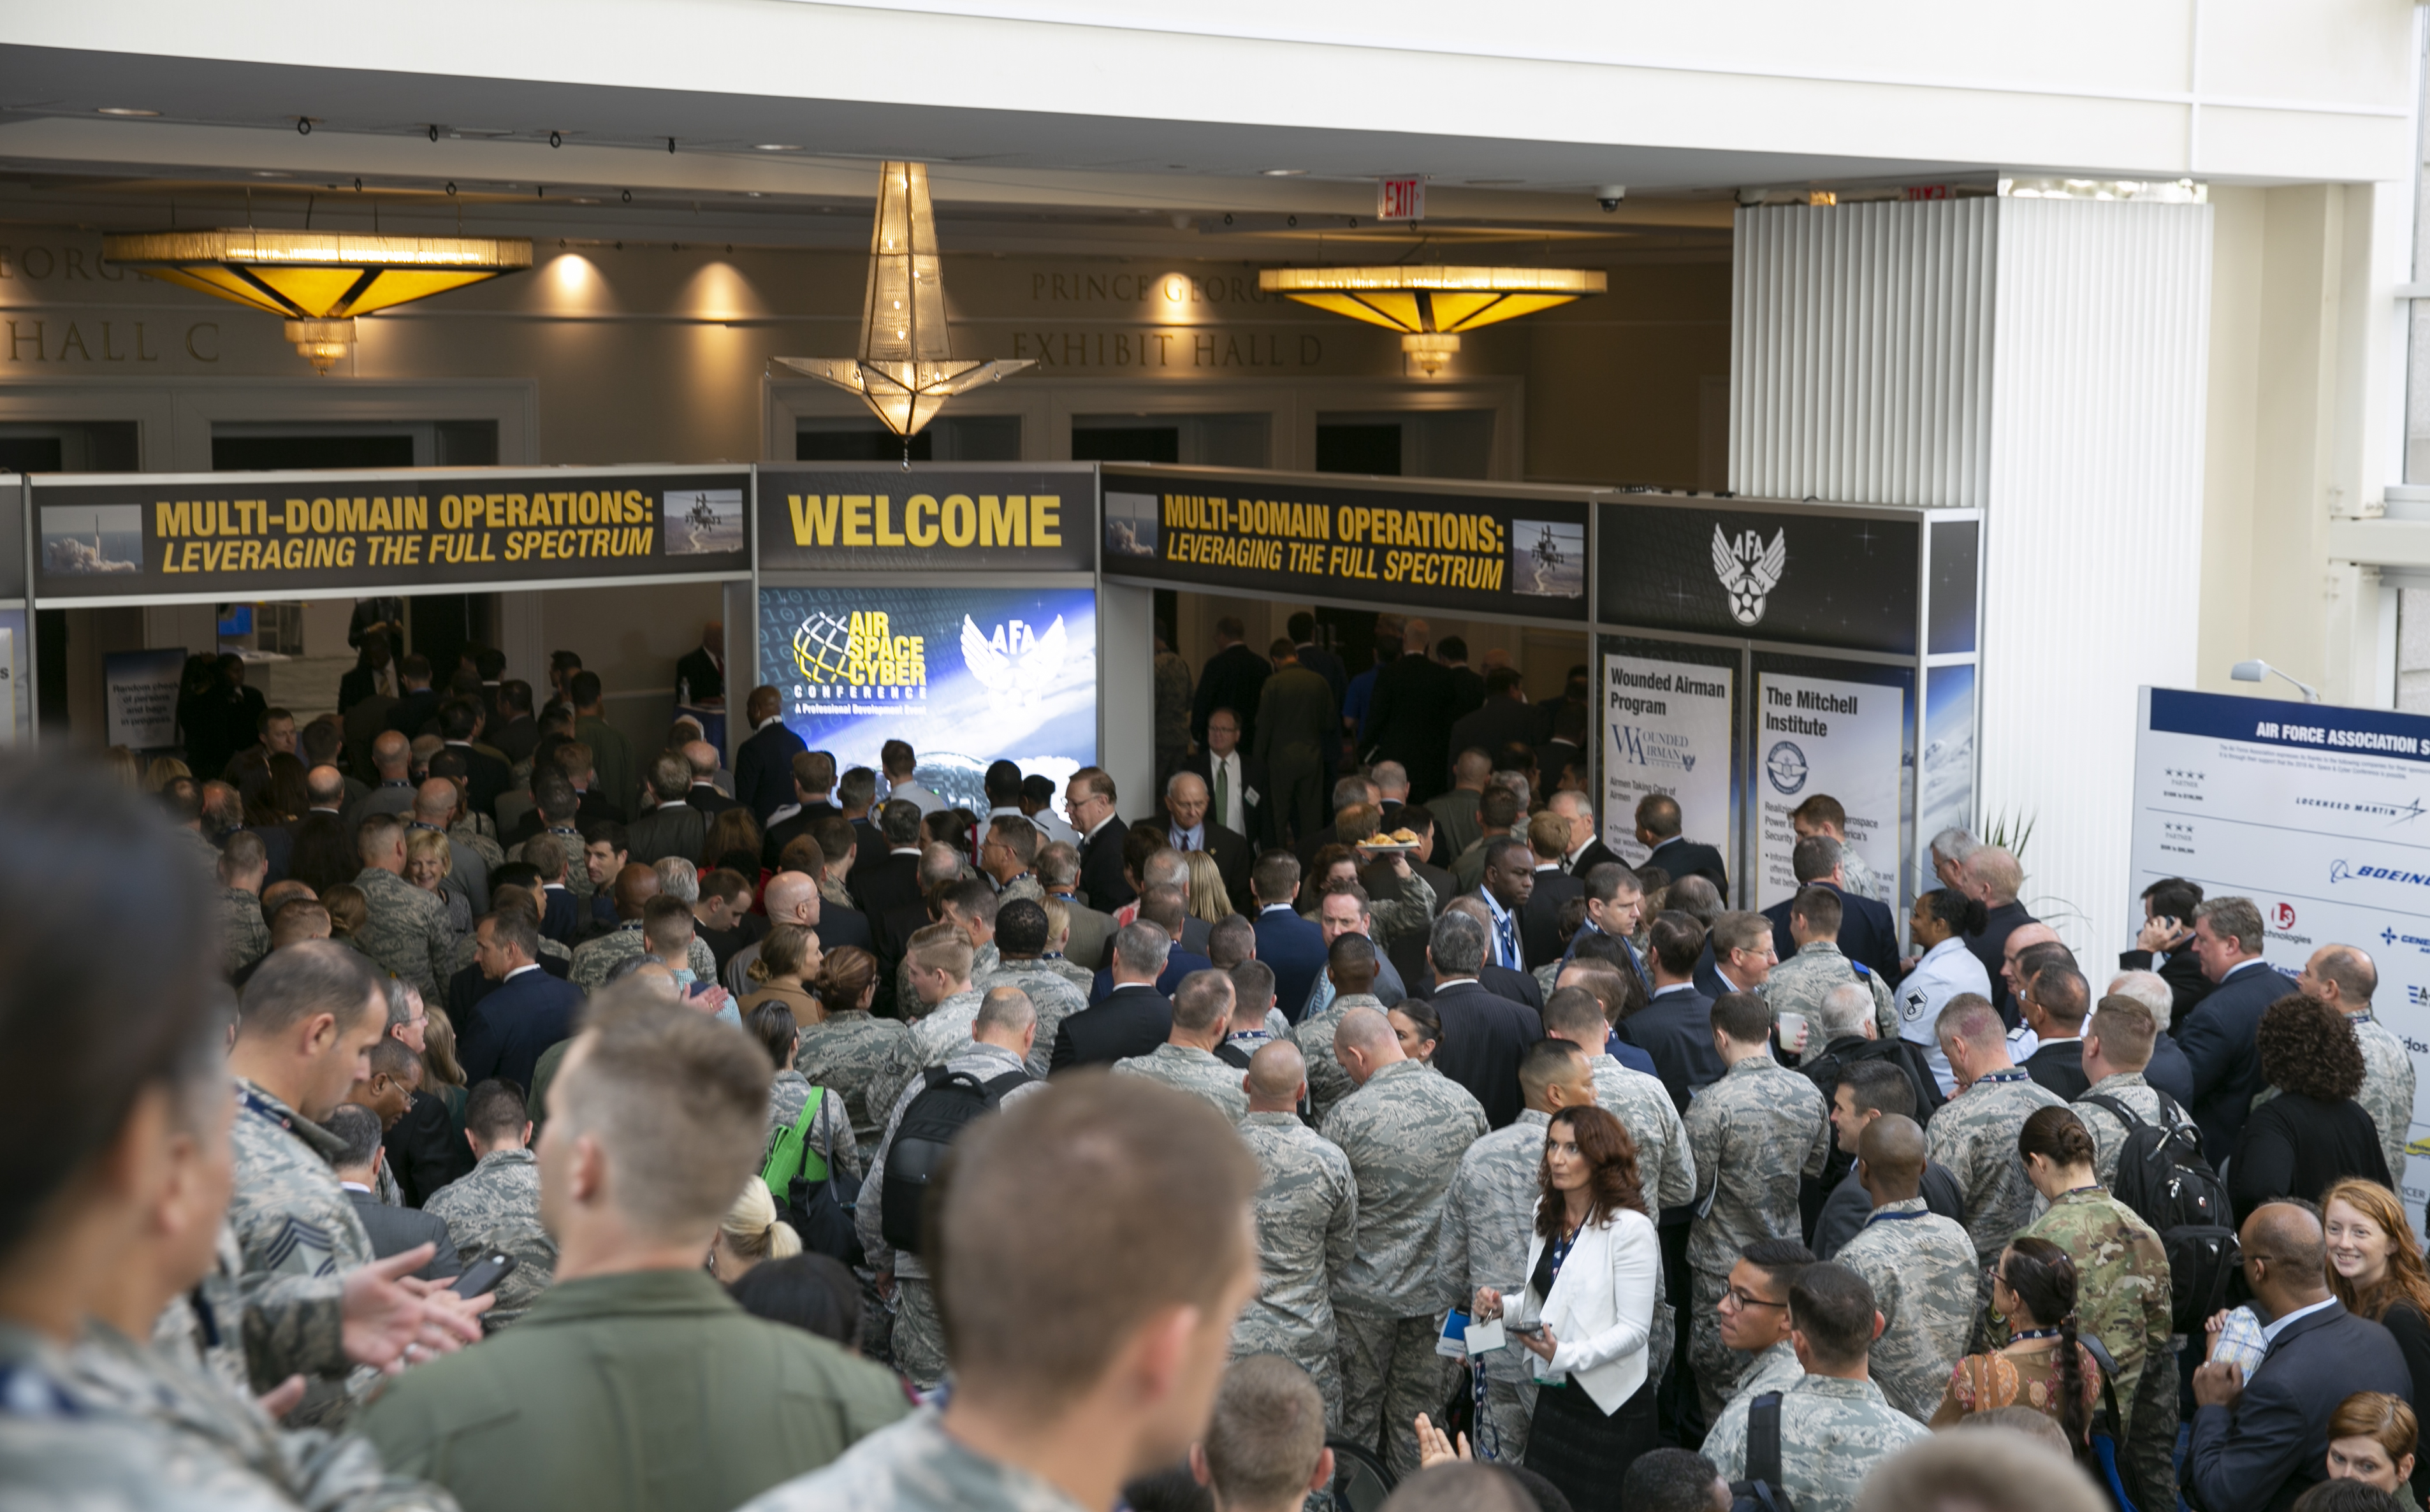 A huge crowd of Airmen wait to enter the exhibit floor at the Air Force Association's Air, Space, and Cyber conference while Vice President Pence was given a tour of the displays. (Alan Lessig/Staff)